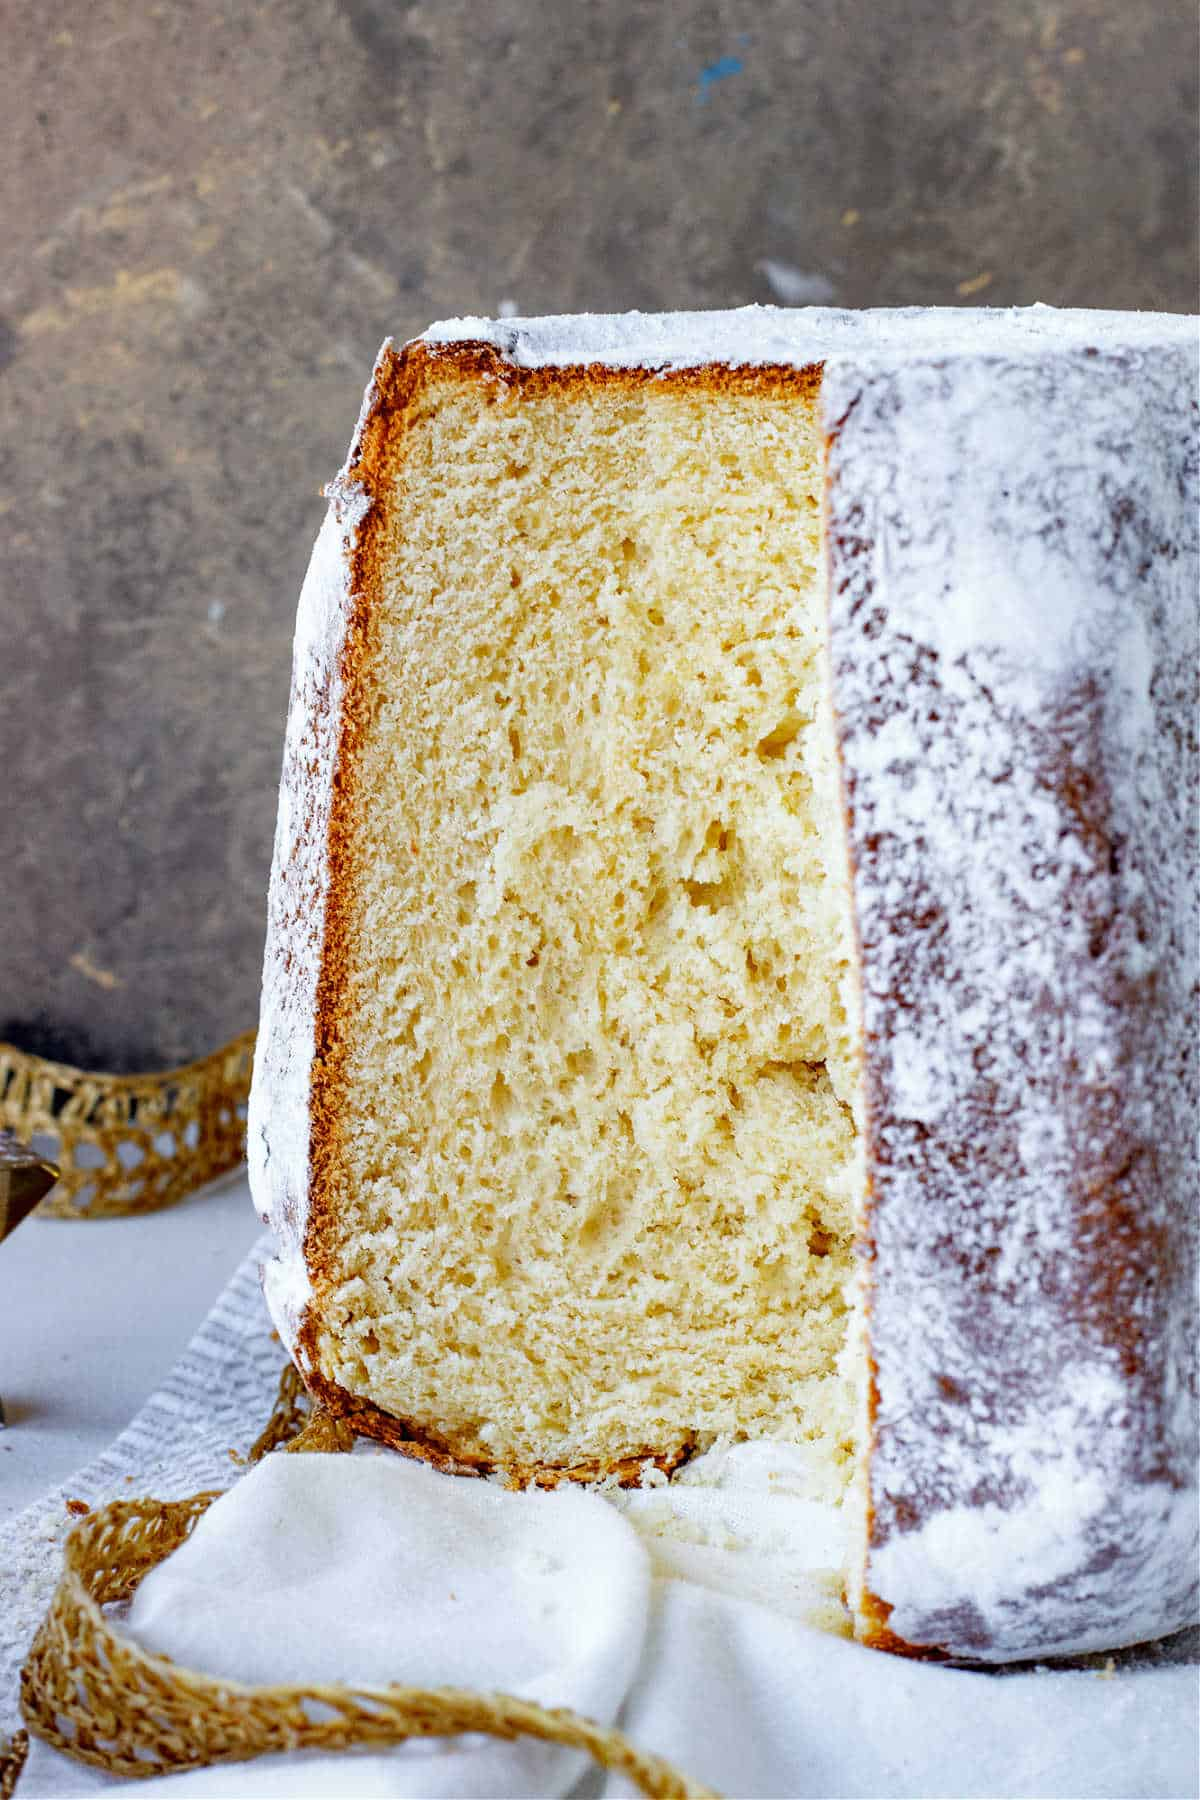 Front view of pandoro bread with missing slice on white, gold and grey surface and background